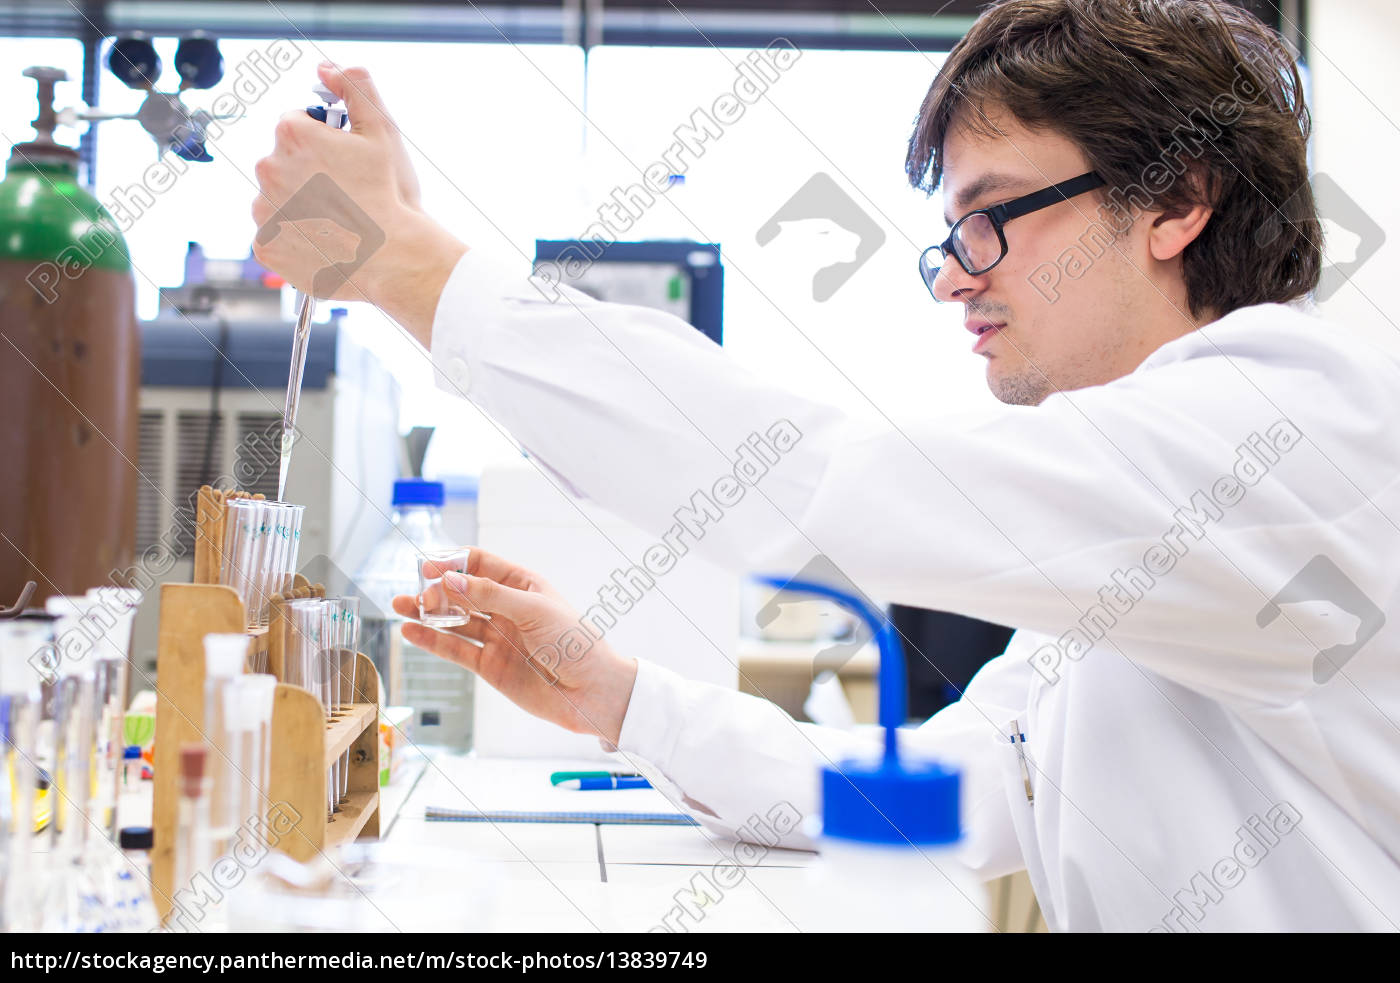 male, researcher, carrying, out, scientific, research - 13839749